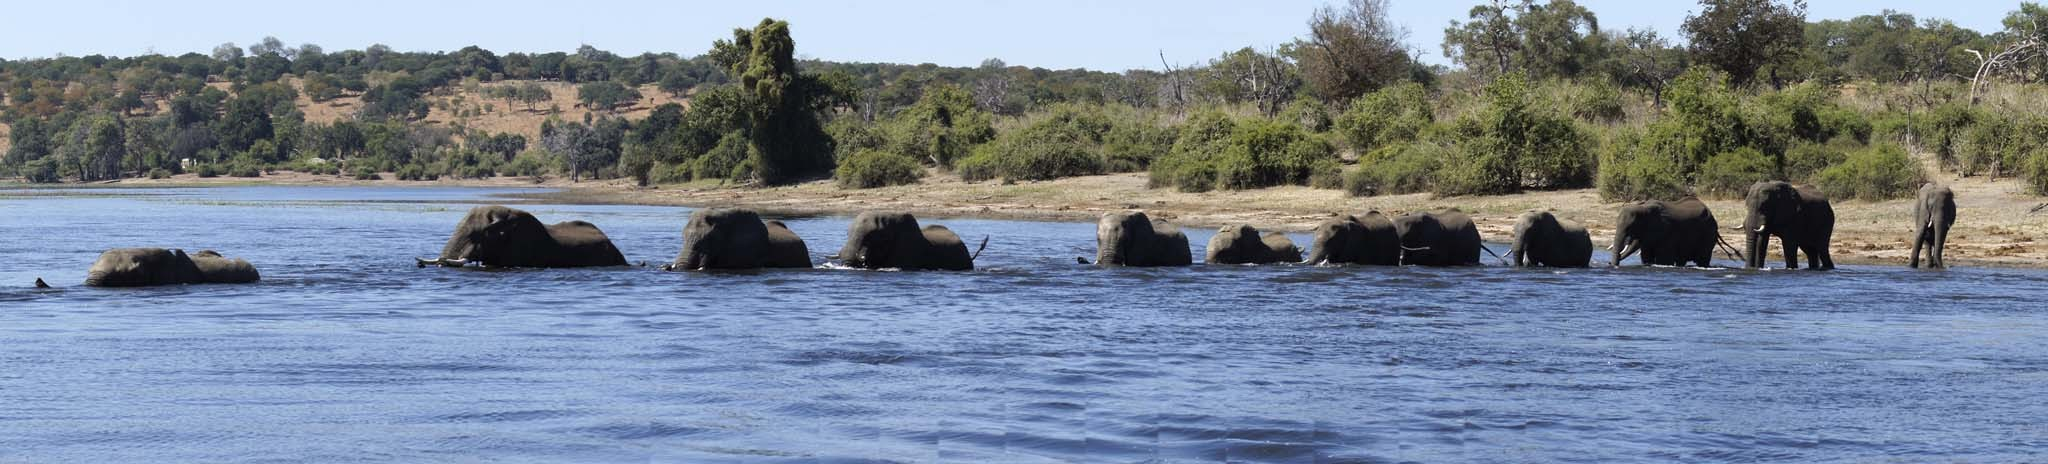 elephants in water panorama